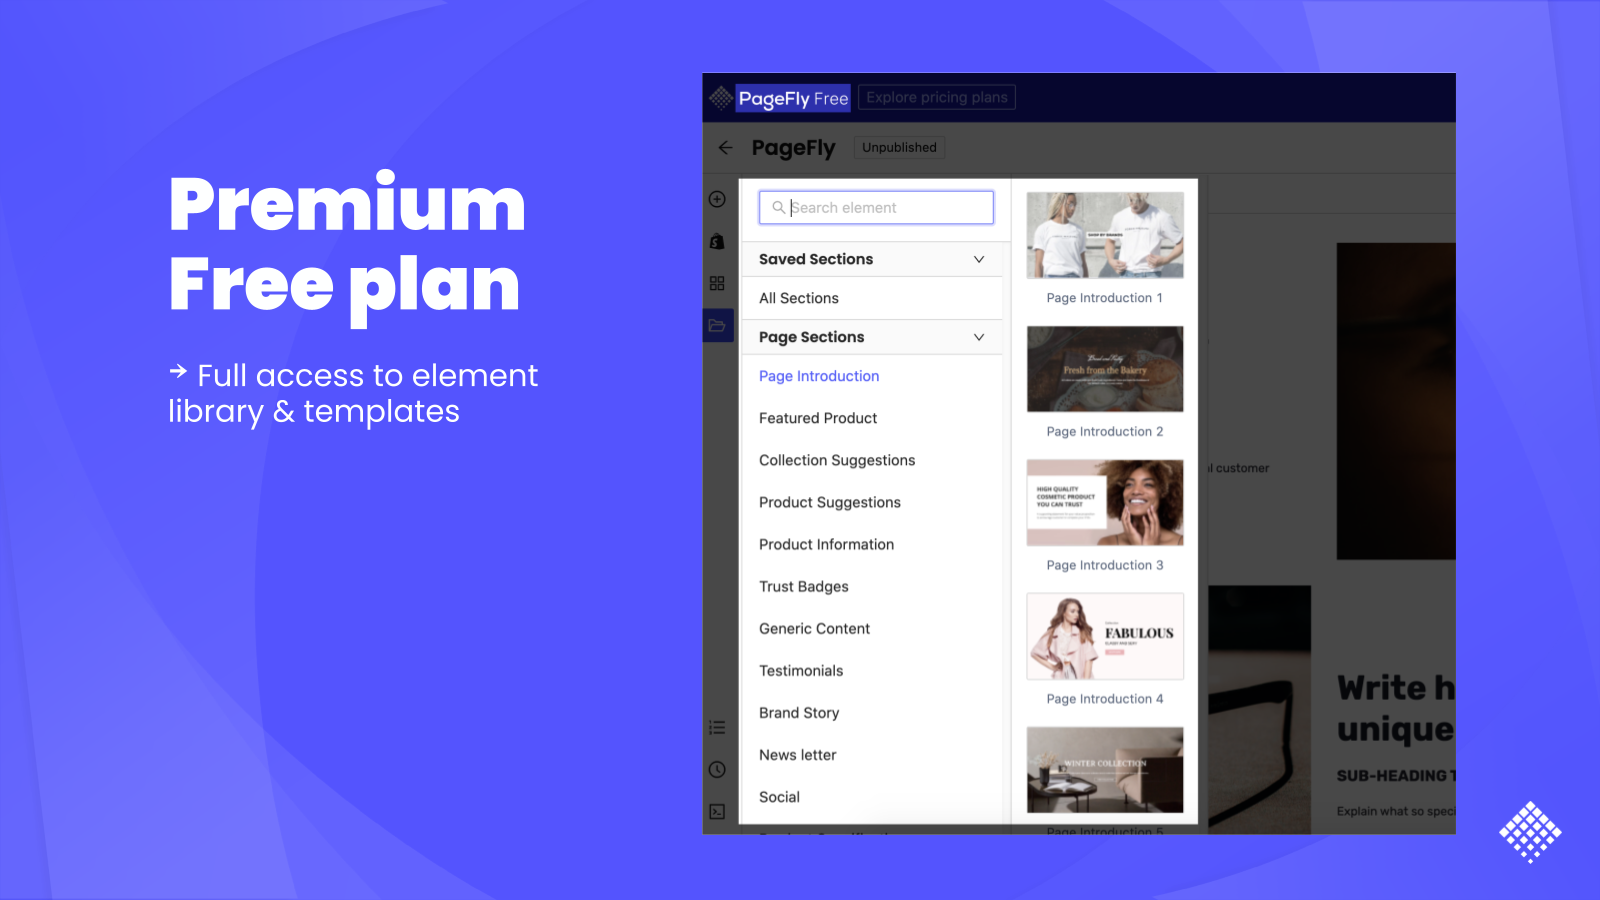 shopify pagefly page editor